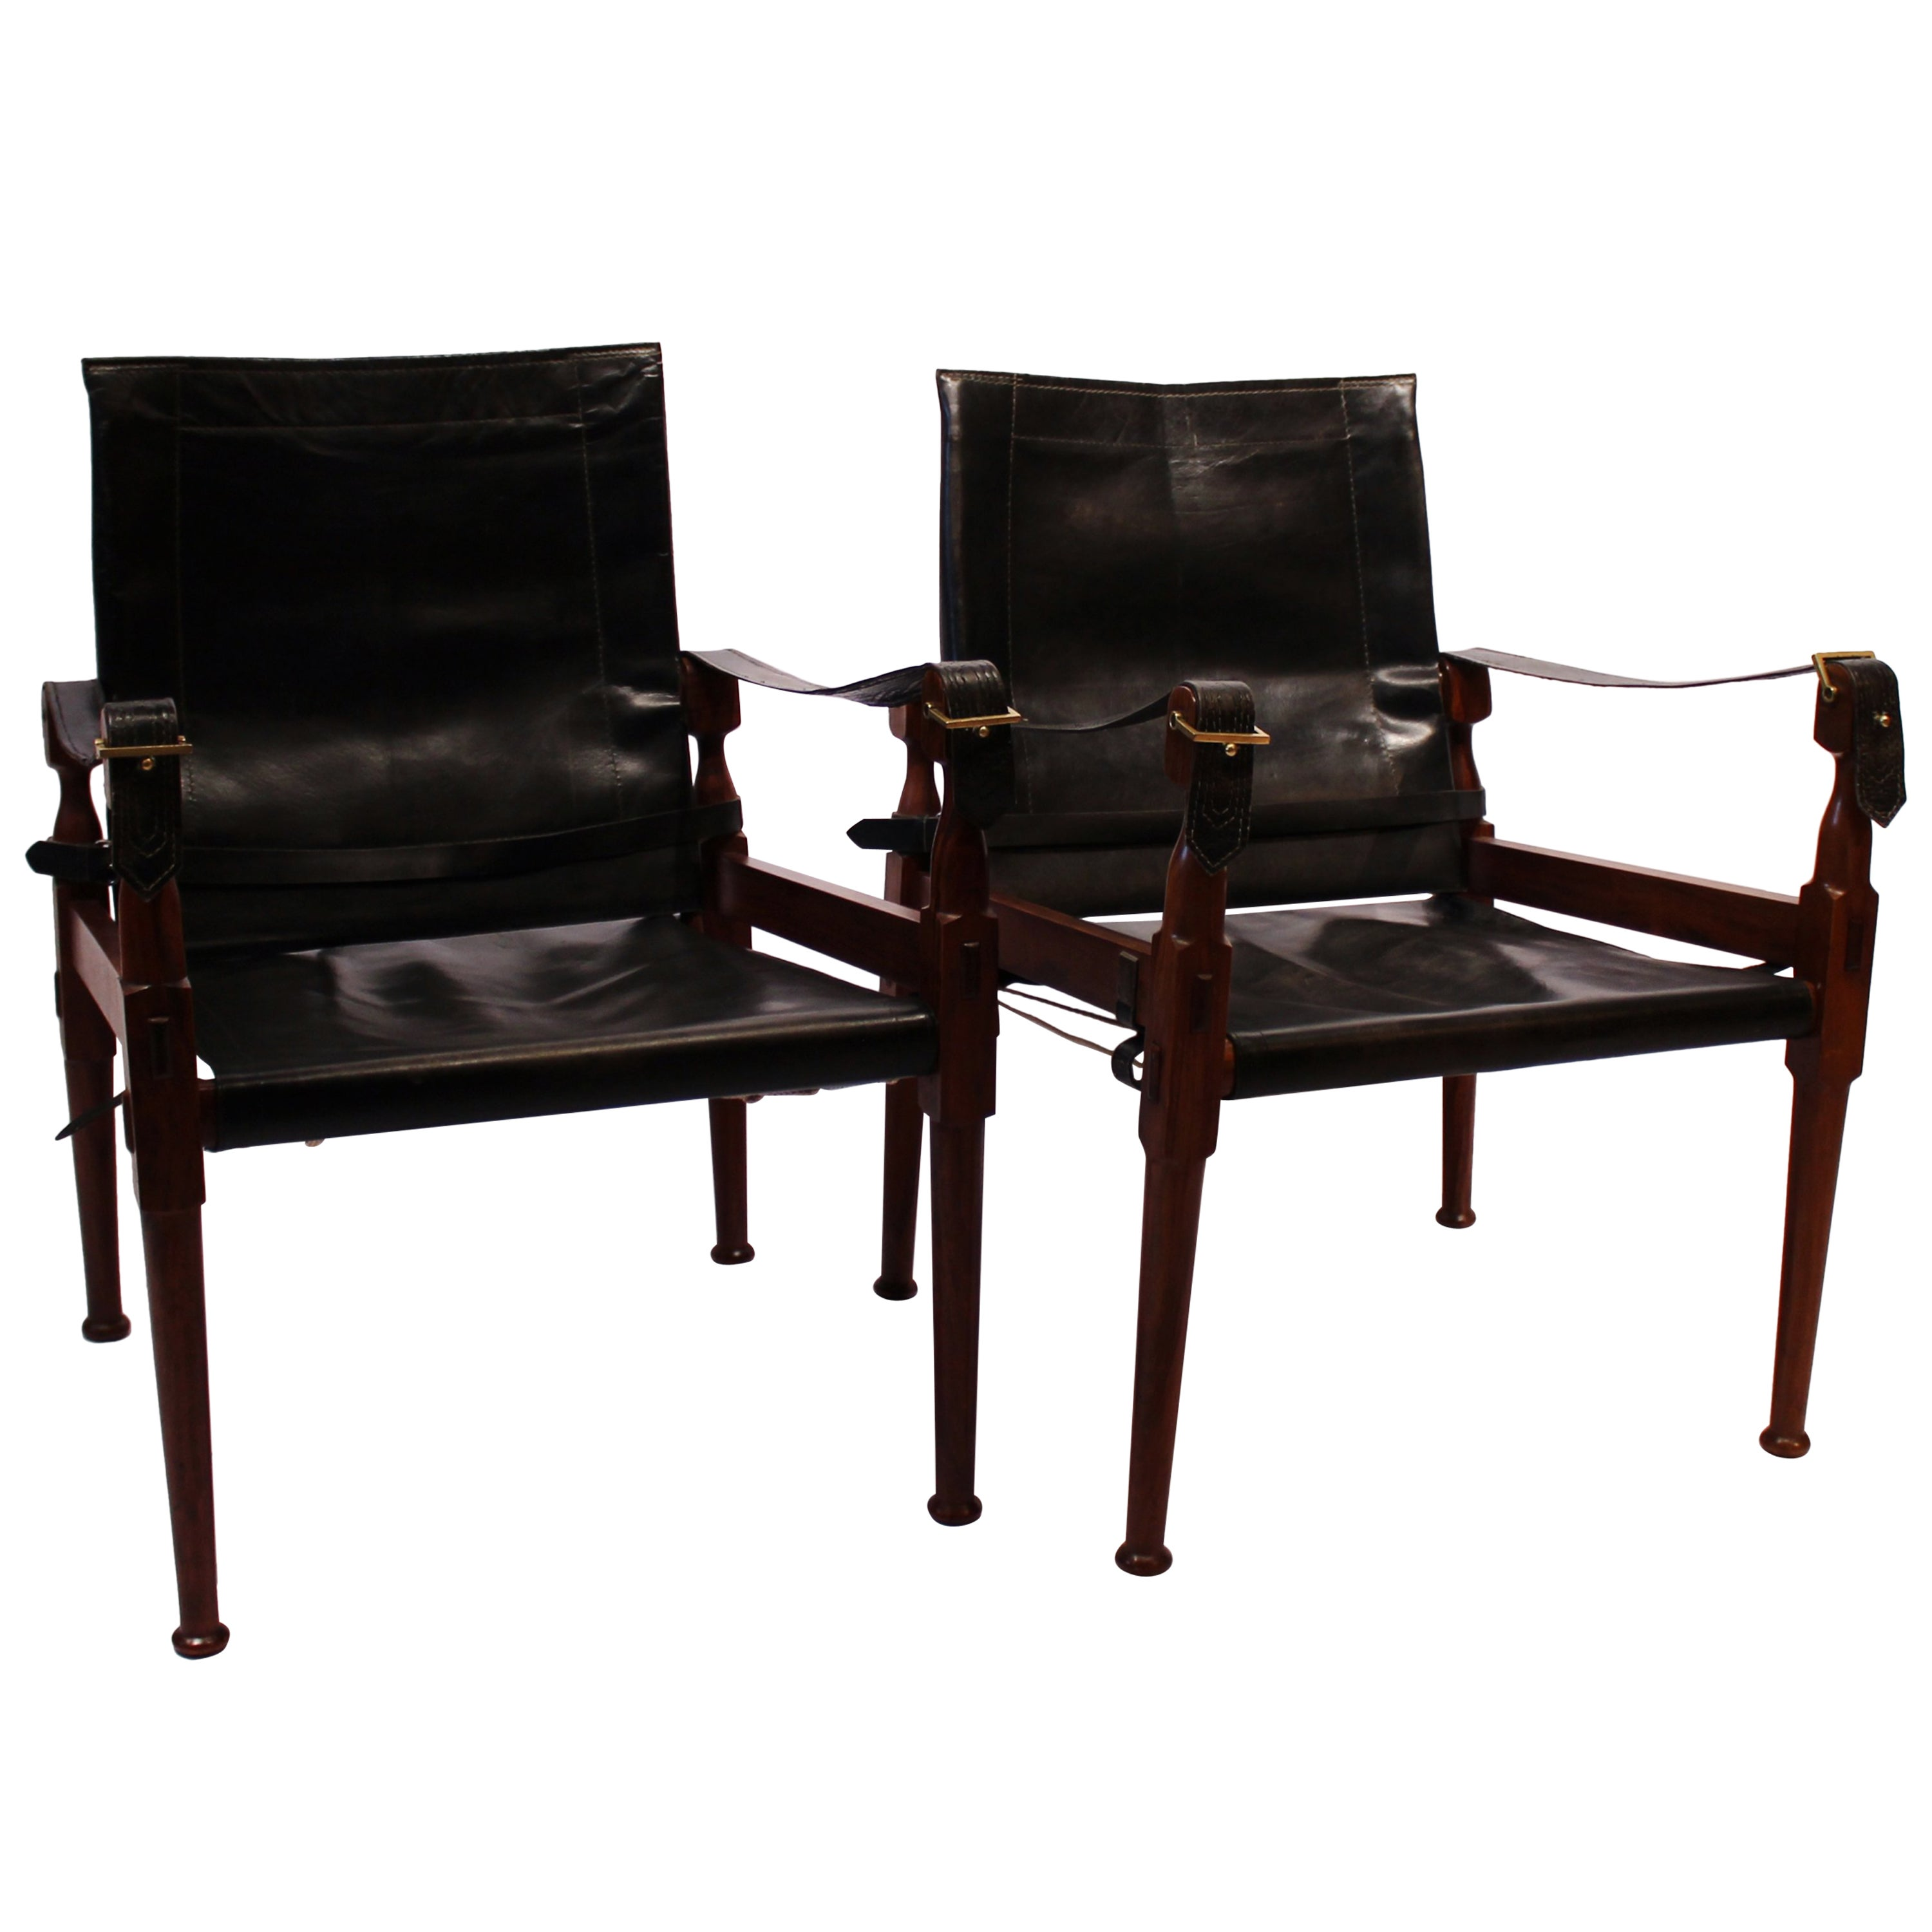 Pair of Safari Chairs in Walnut and Black Patineret Leather, 1960s